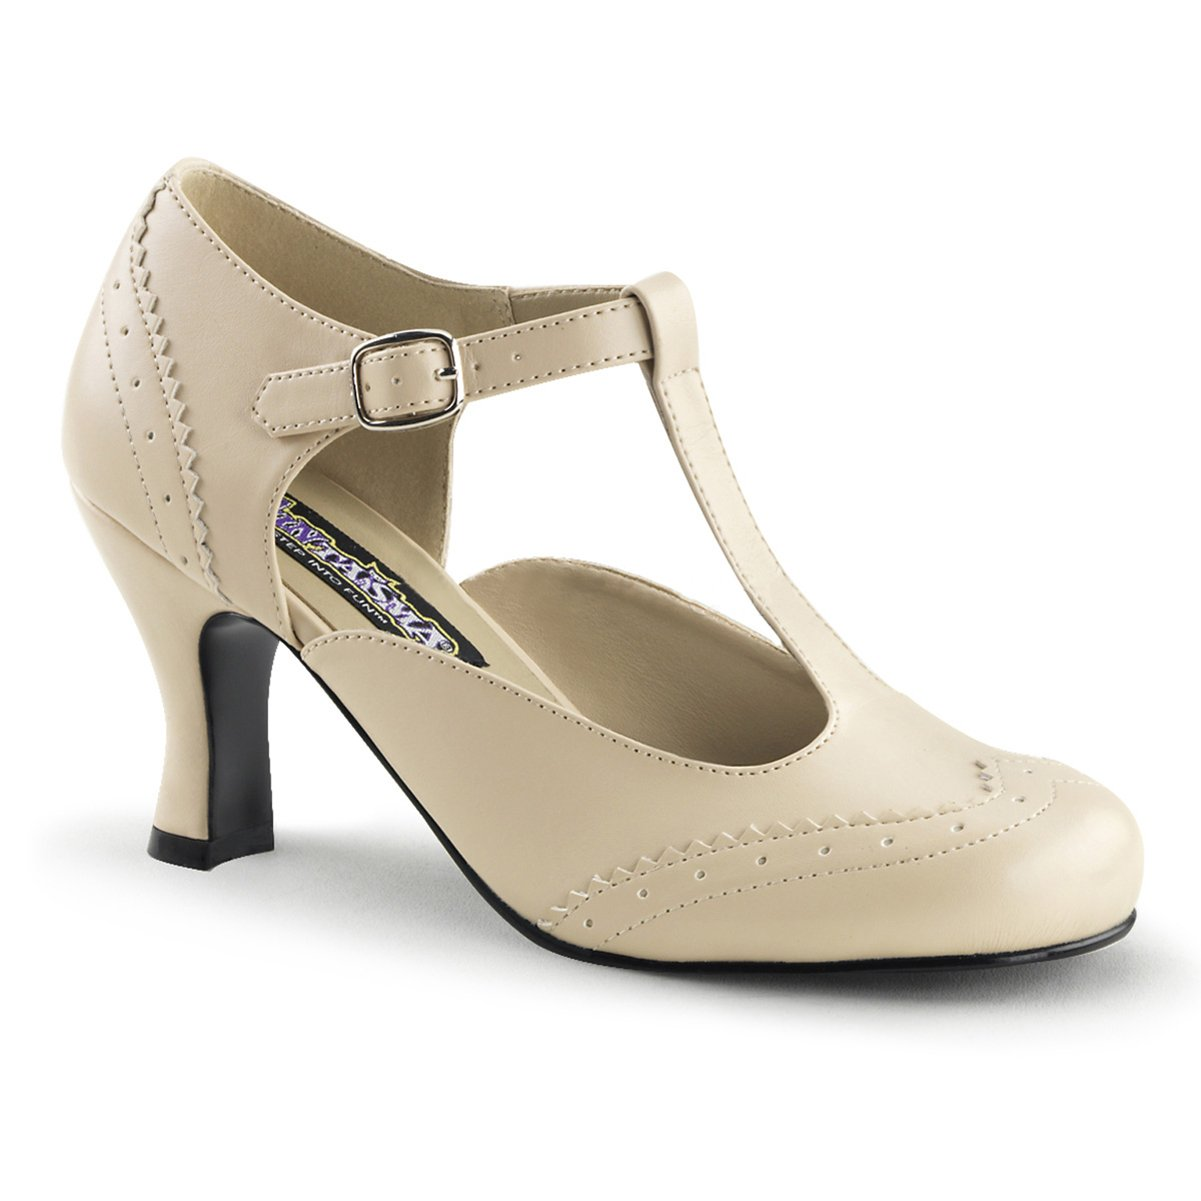 f2fda9f37 Amazon.com | Summitfashions Womens 3 Inch Low Heels Pumps with T-Strap  Detail Cream Office Shoes | Pumps